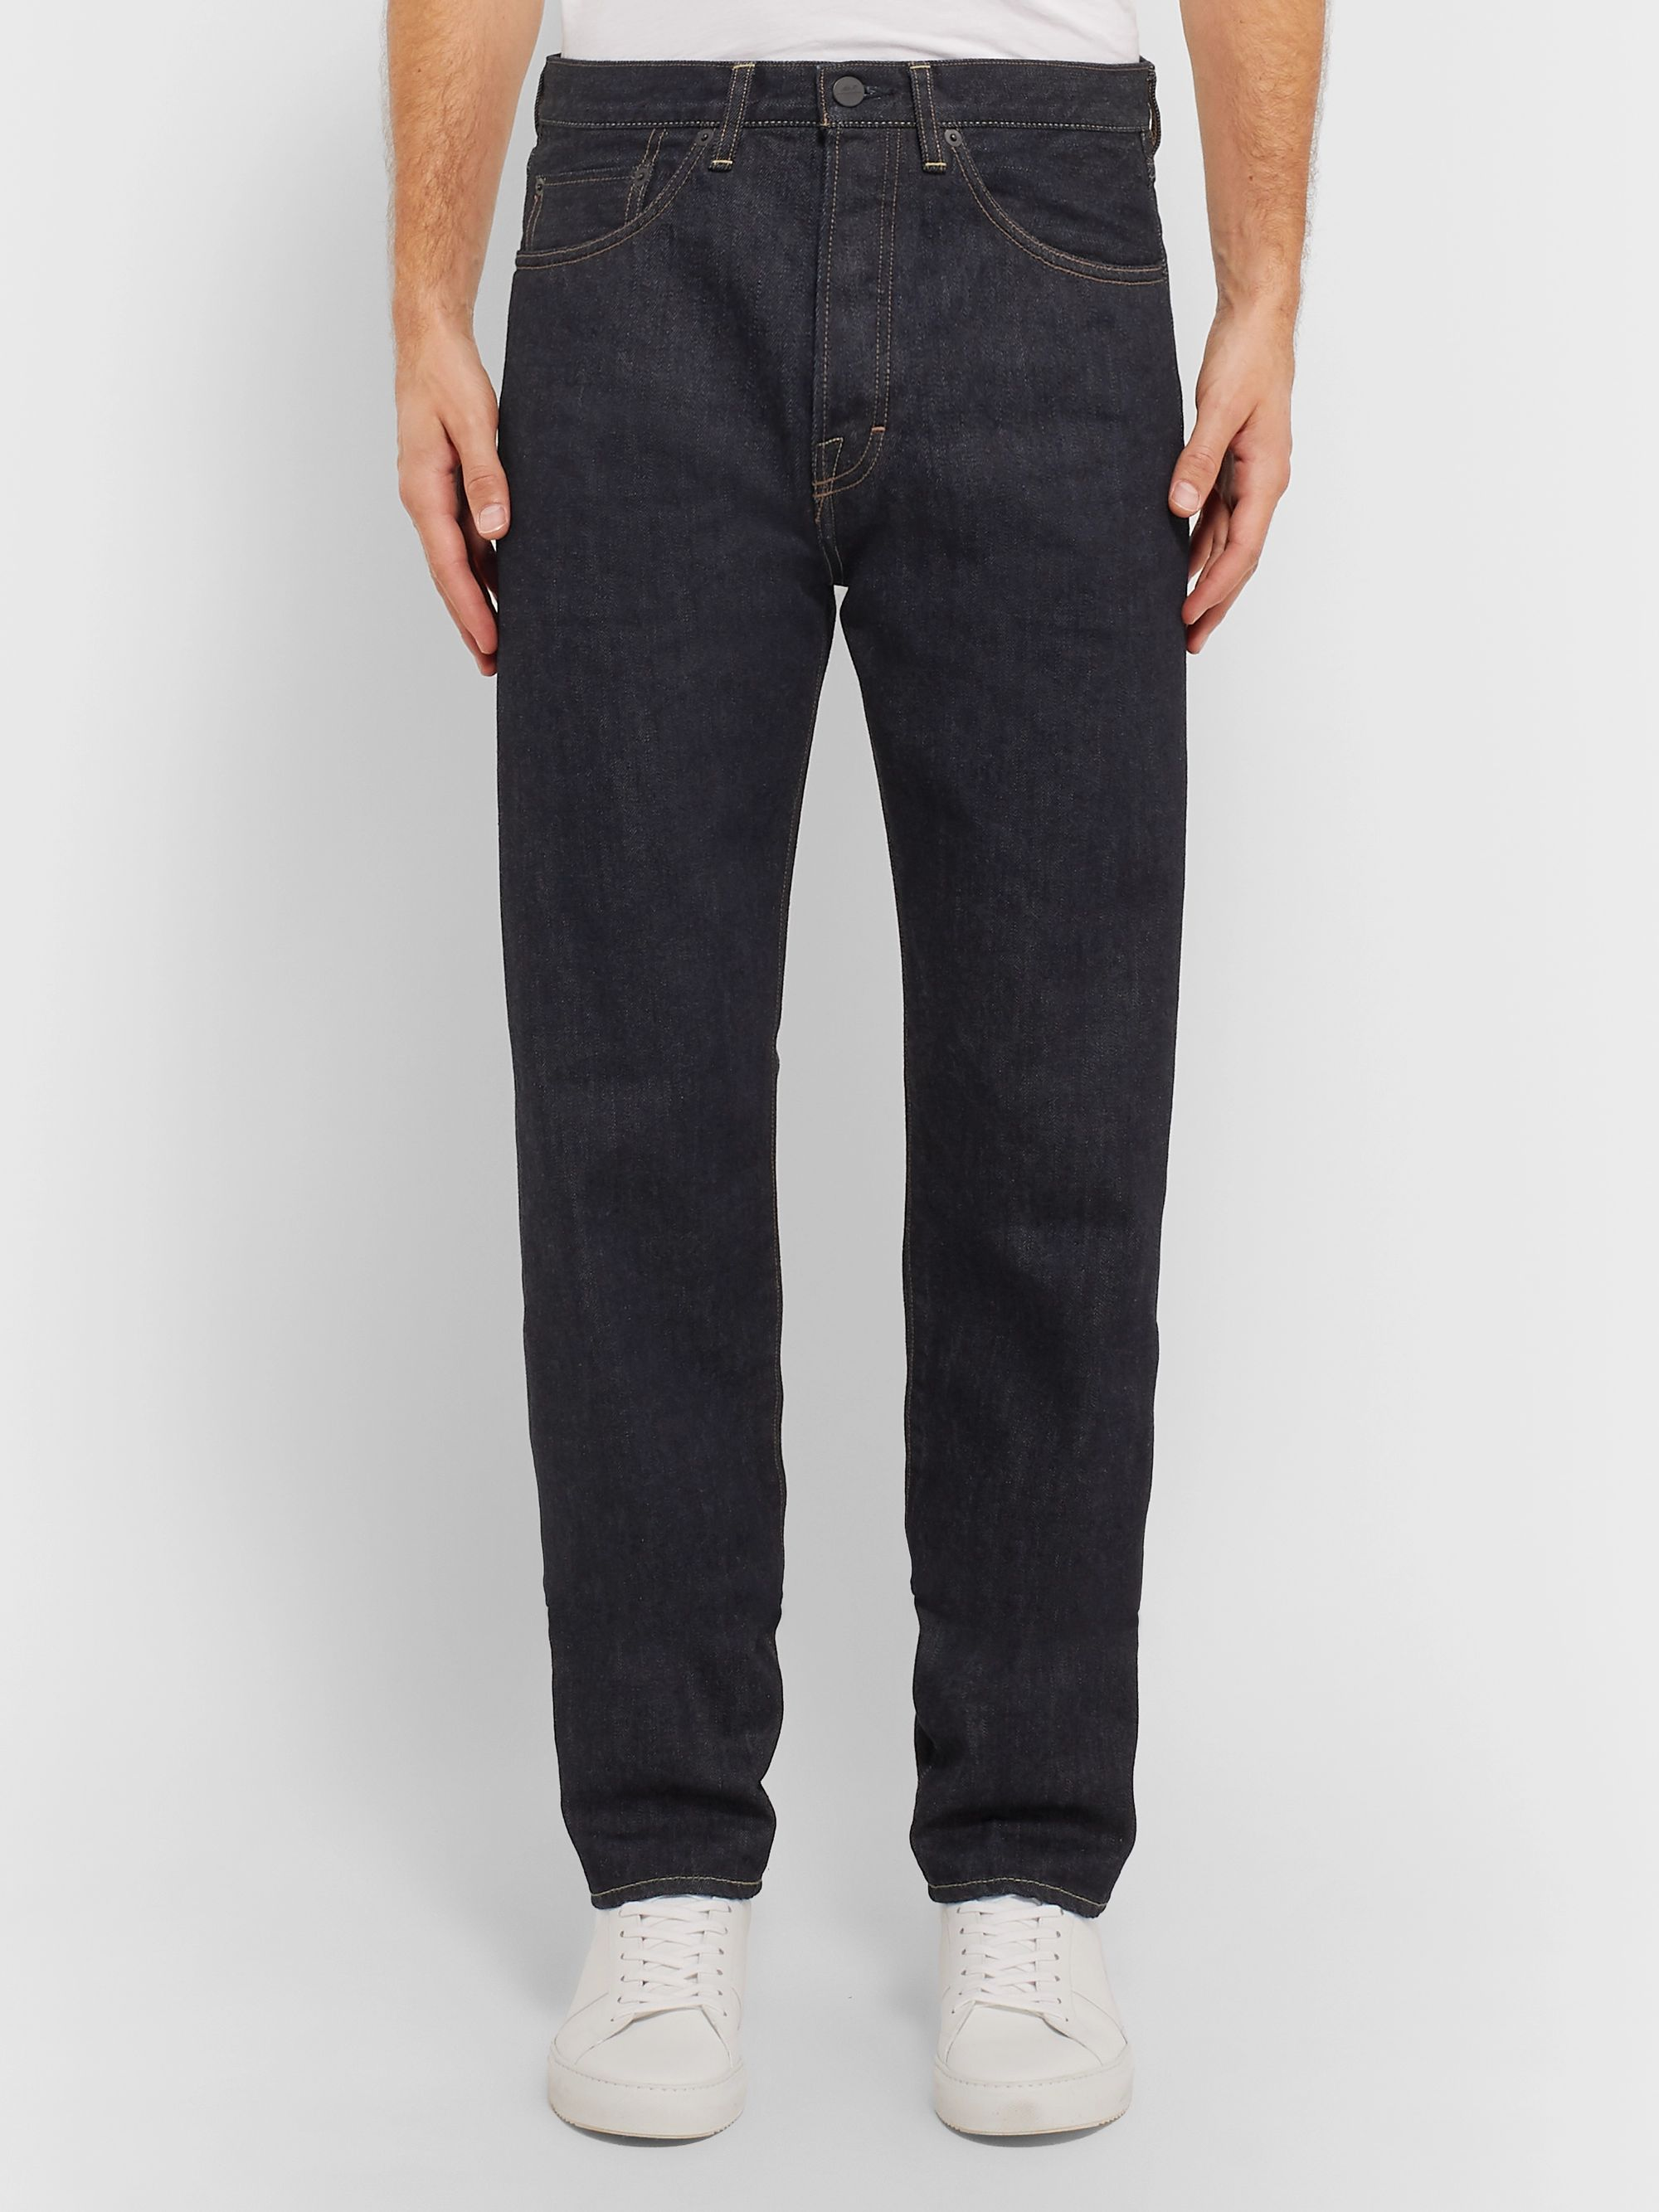 Mr P. Straight-Leg Selvedge Denim Jeans